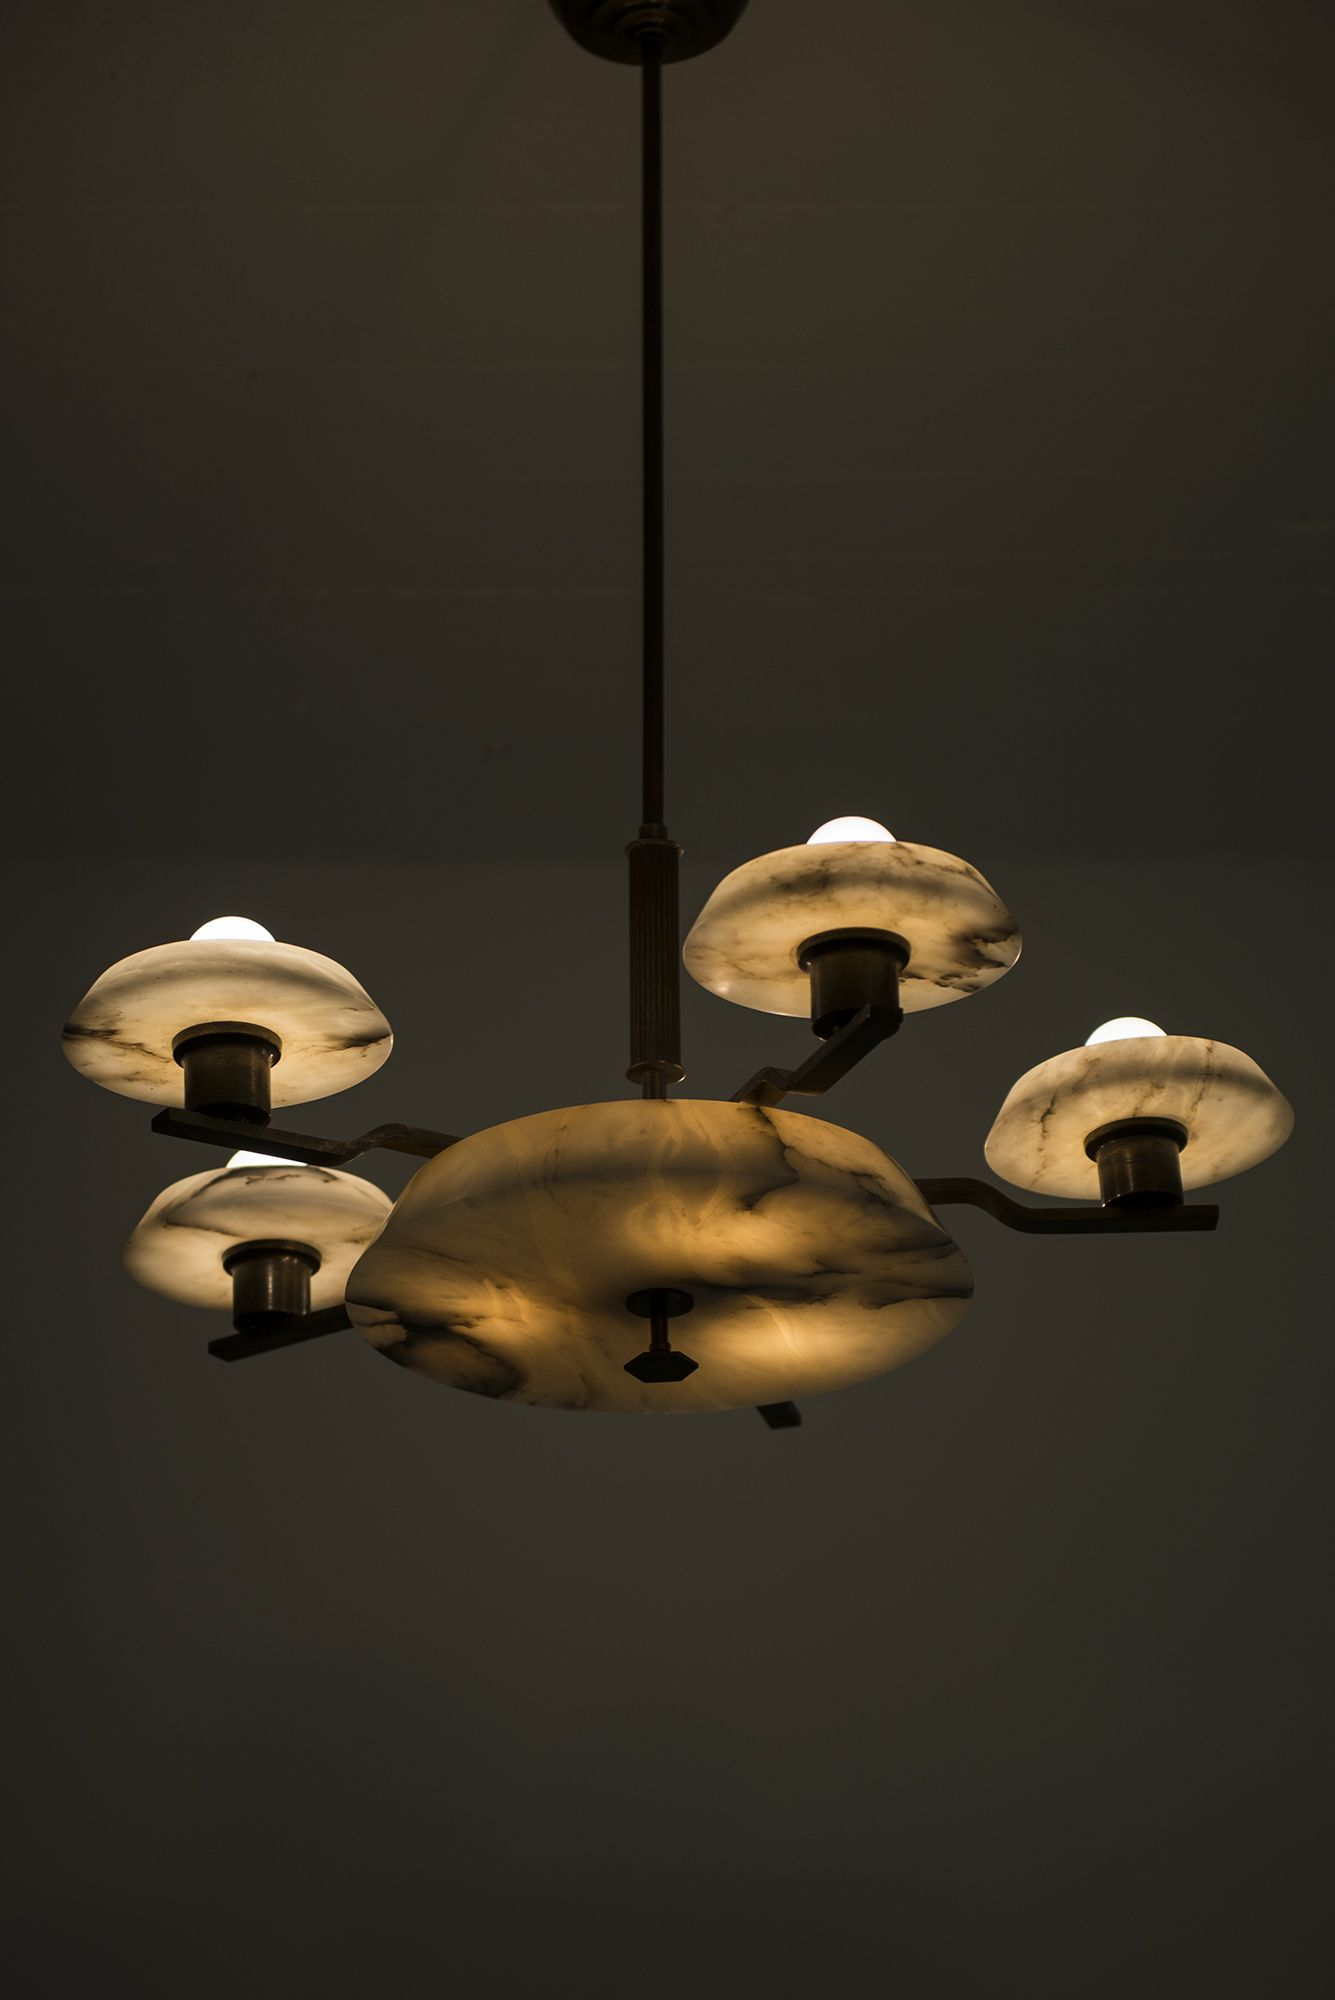 deco your art lighting complete turner interior light with ceiling family ceilings inspirations design products